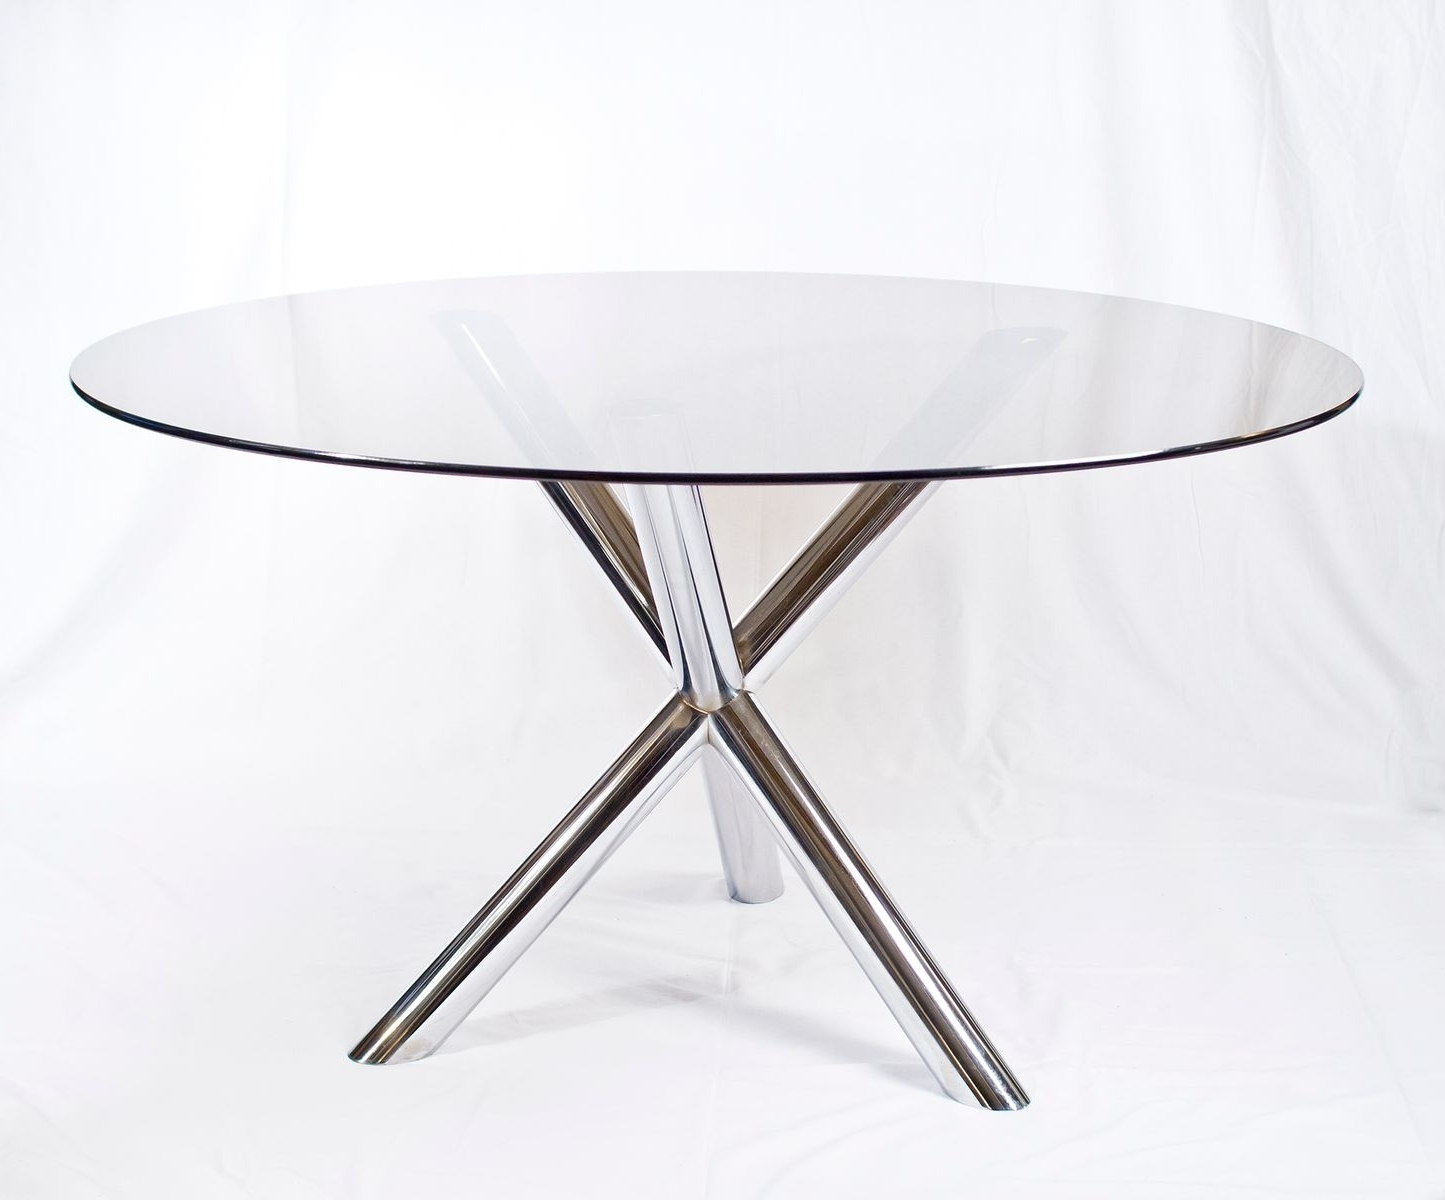 Chrome & Glass Dining Table, 1970S For Sale At Pamono Intended For Fashionable Chrome Glass Dining Tables (View 20 of 25)